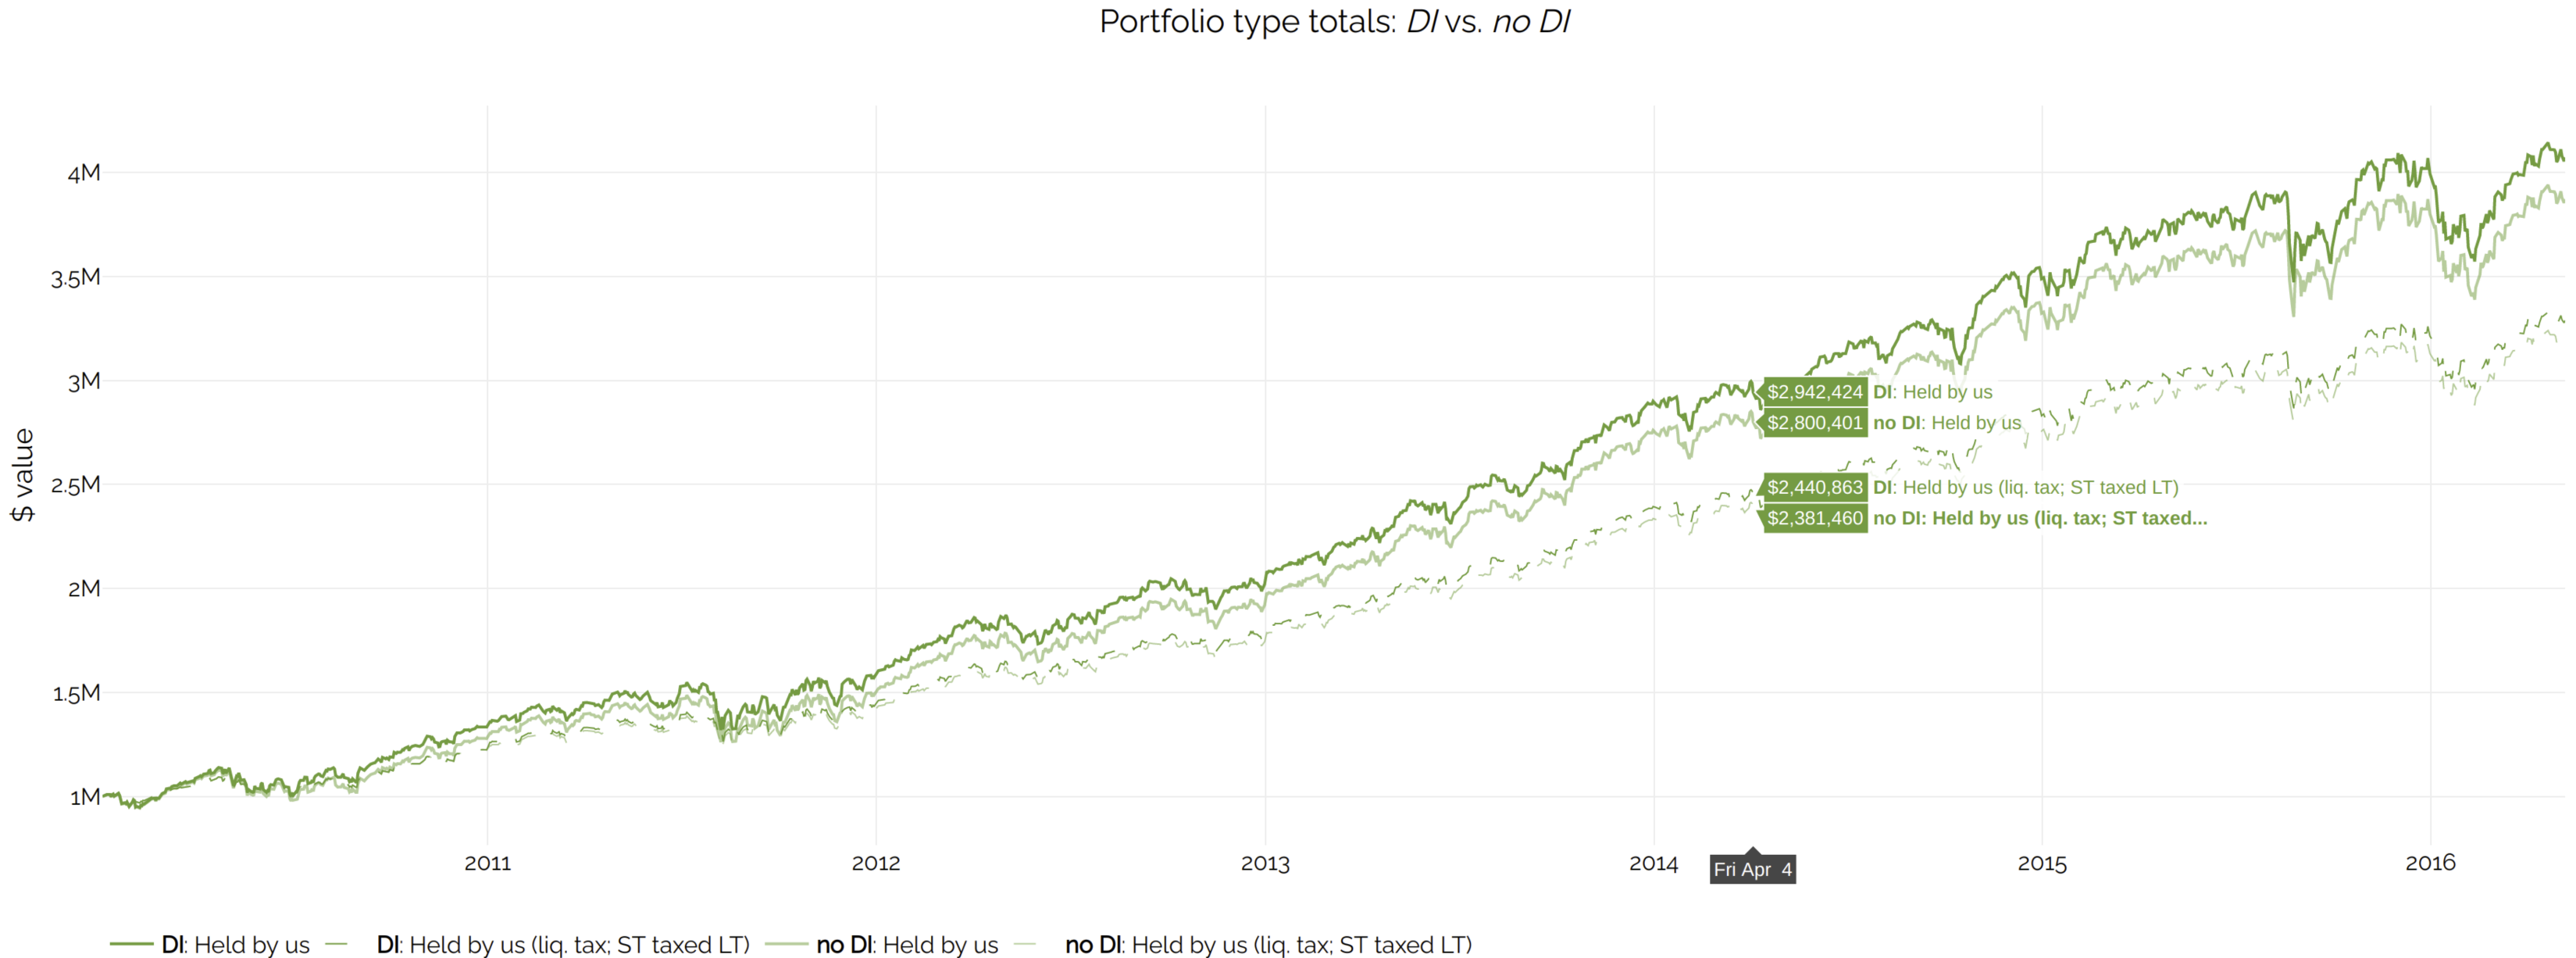 Portfolio values, before and after tax, with and without DI